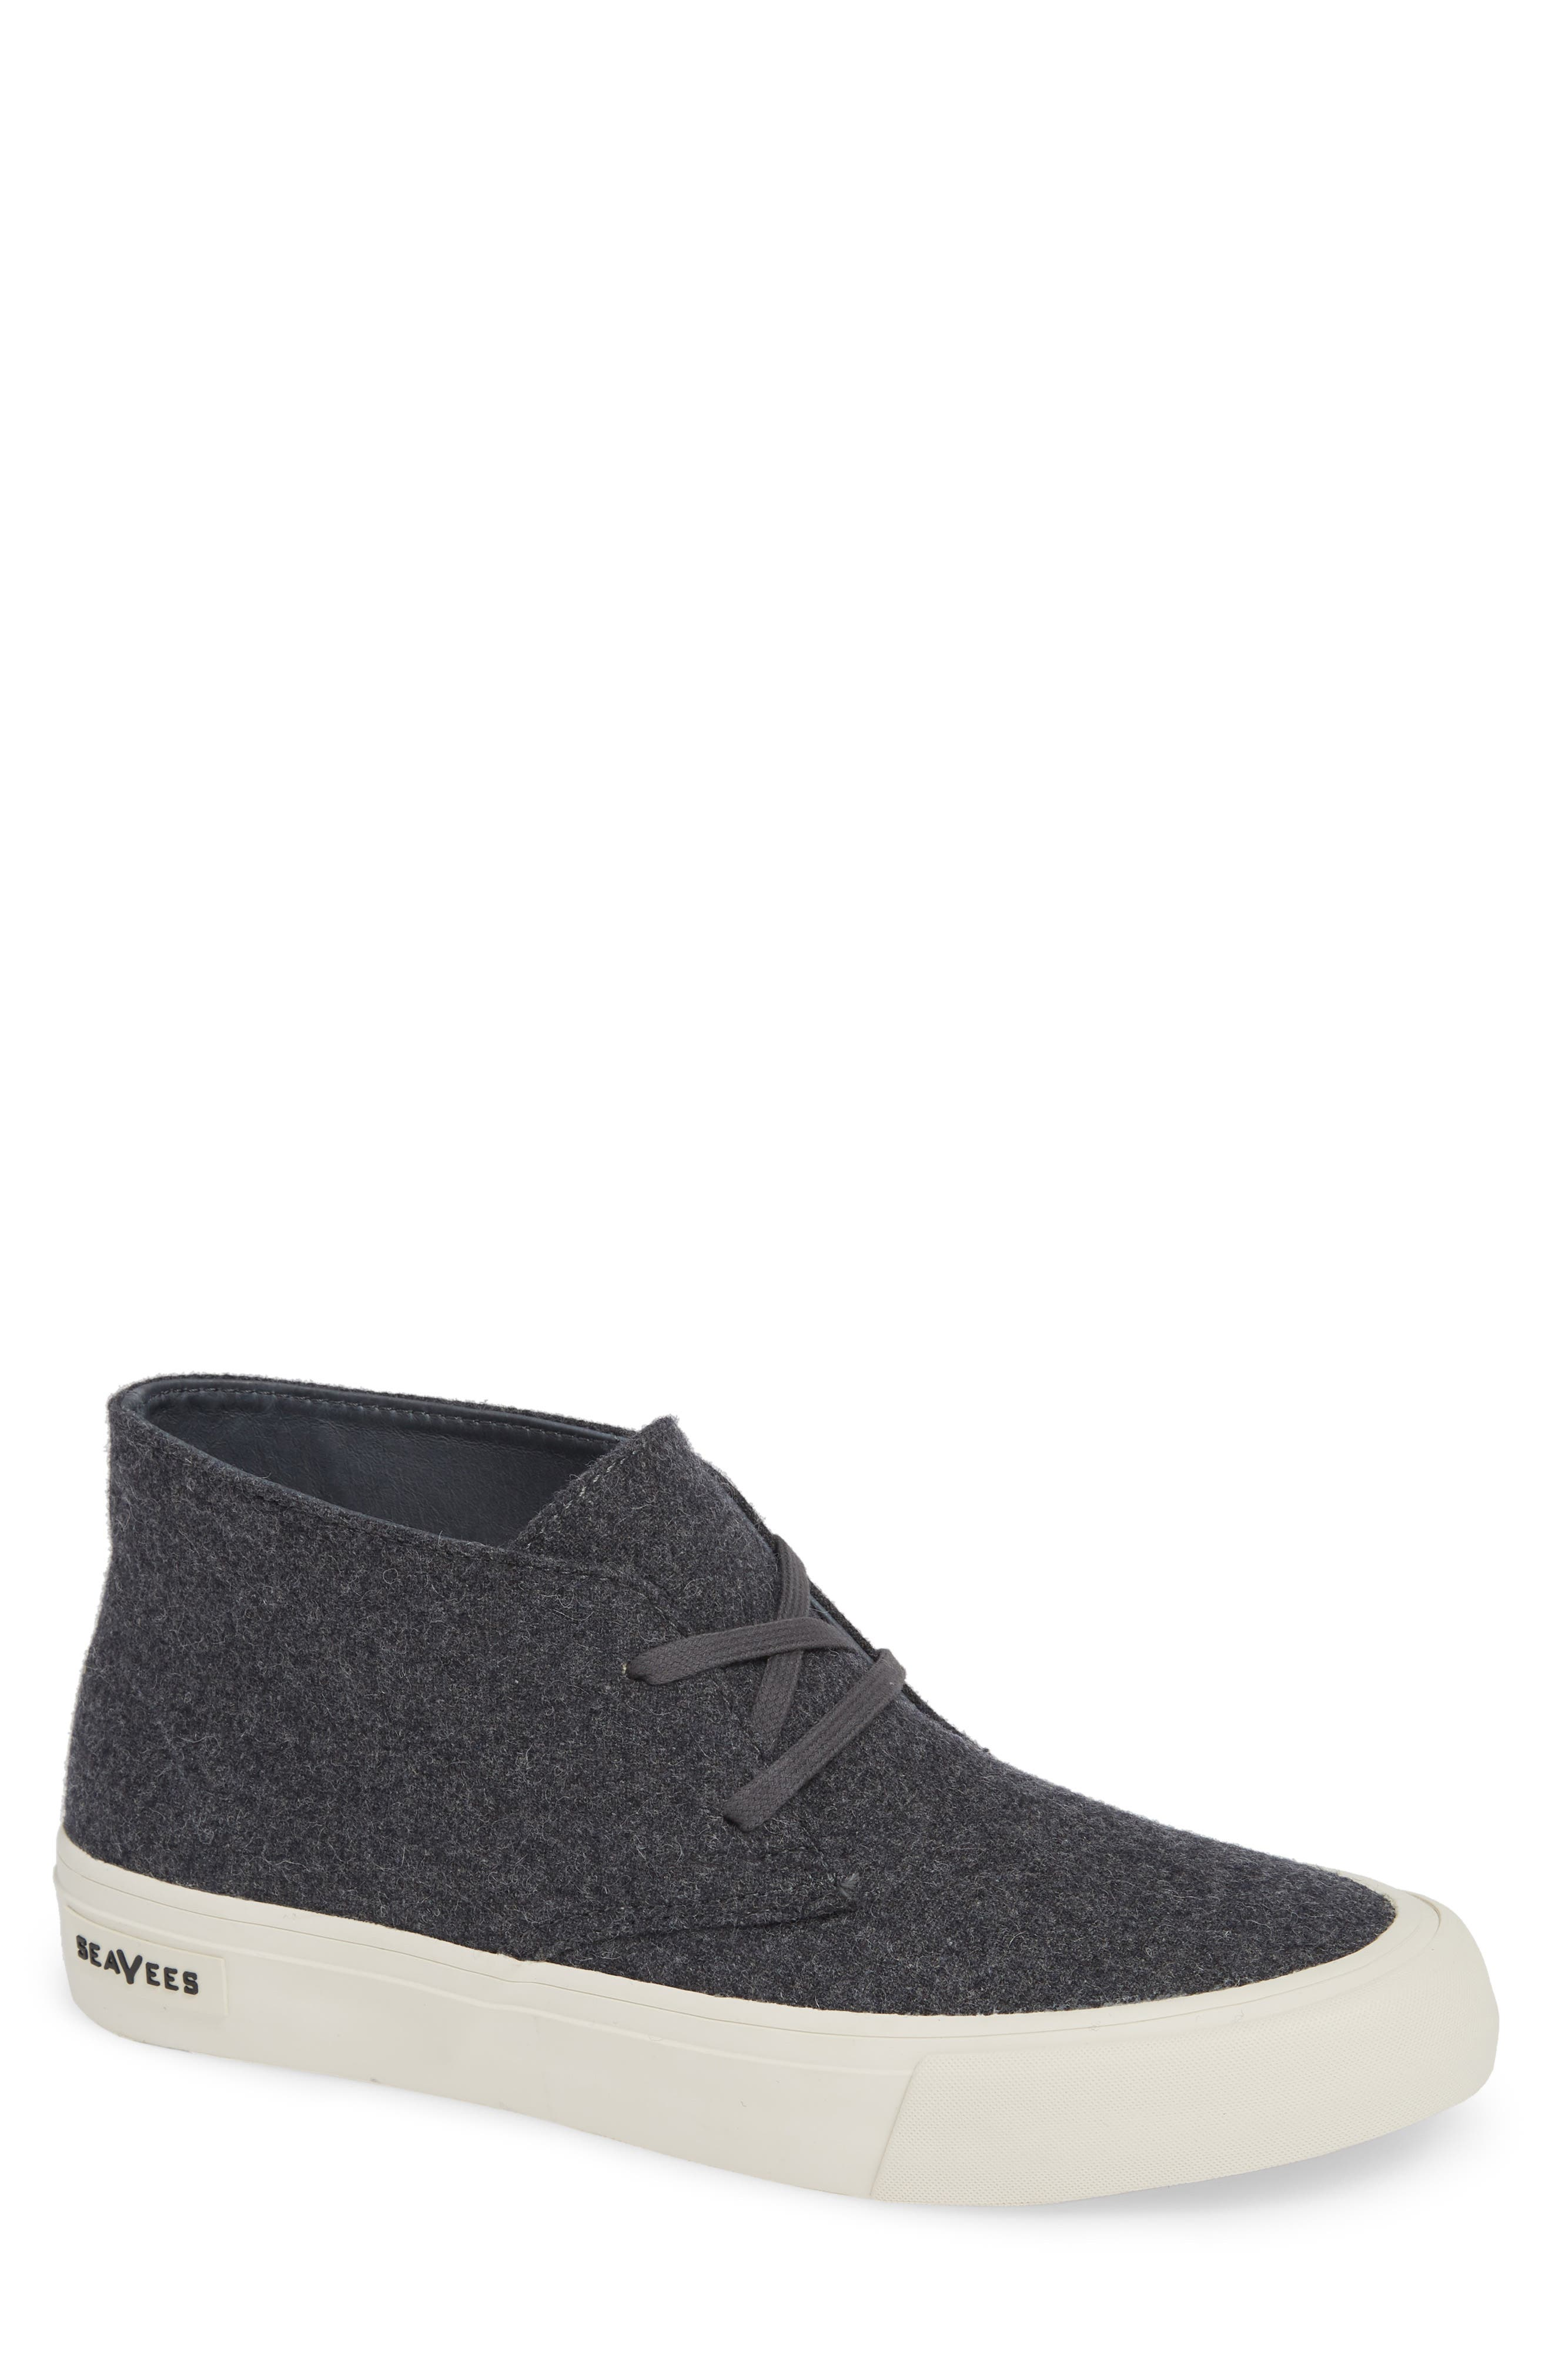 Maslon Chukka Sneaker,                             Main thumbnail 1, color,                             CHARCOAL WOOL FLANNEL